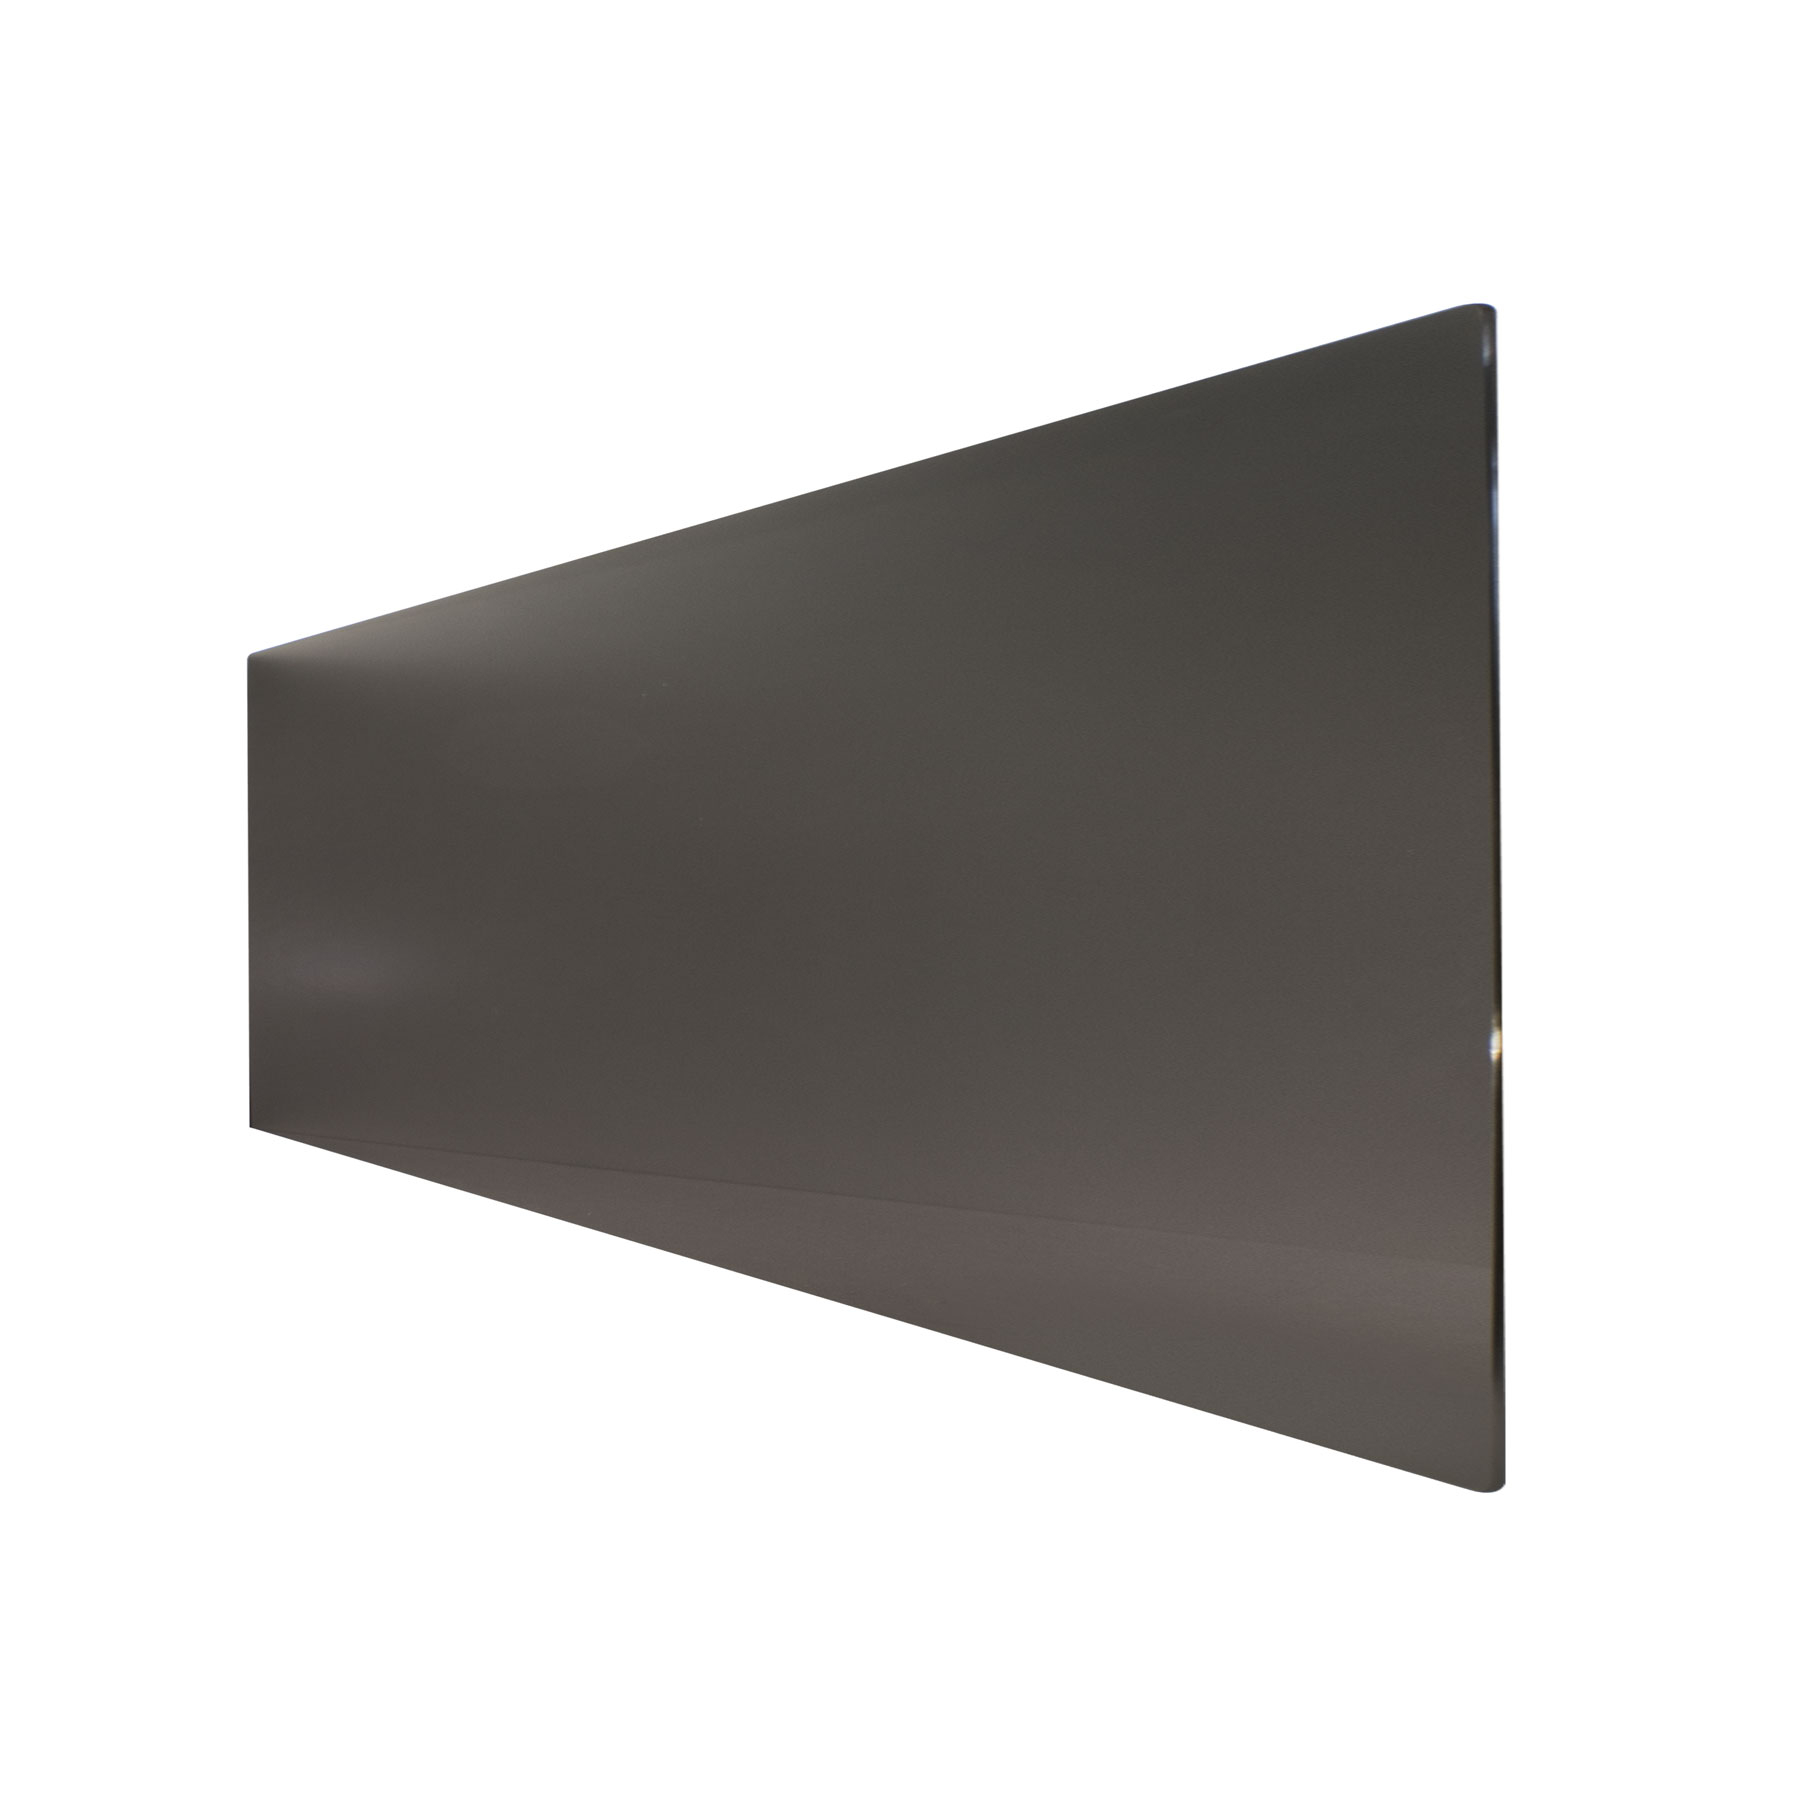 Technotherm Design Glass - Black 454mm